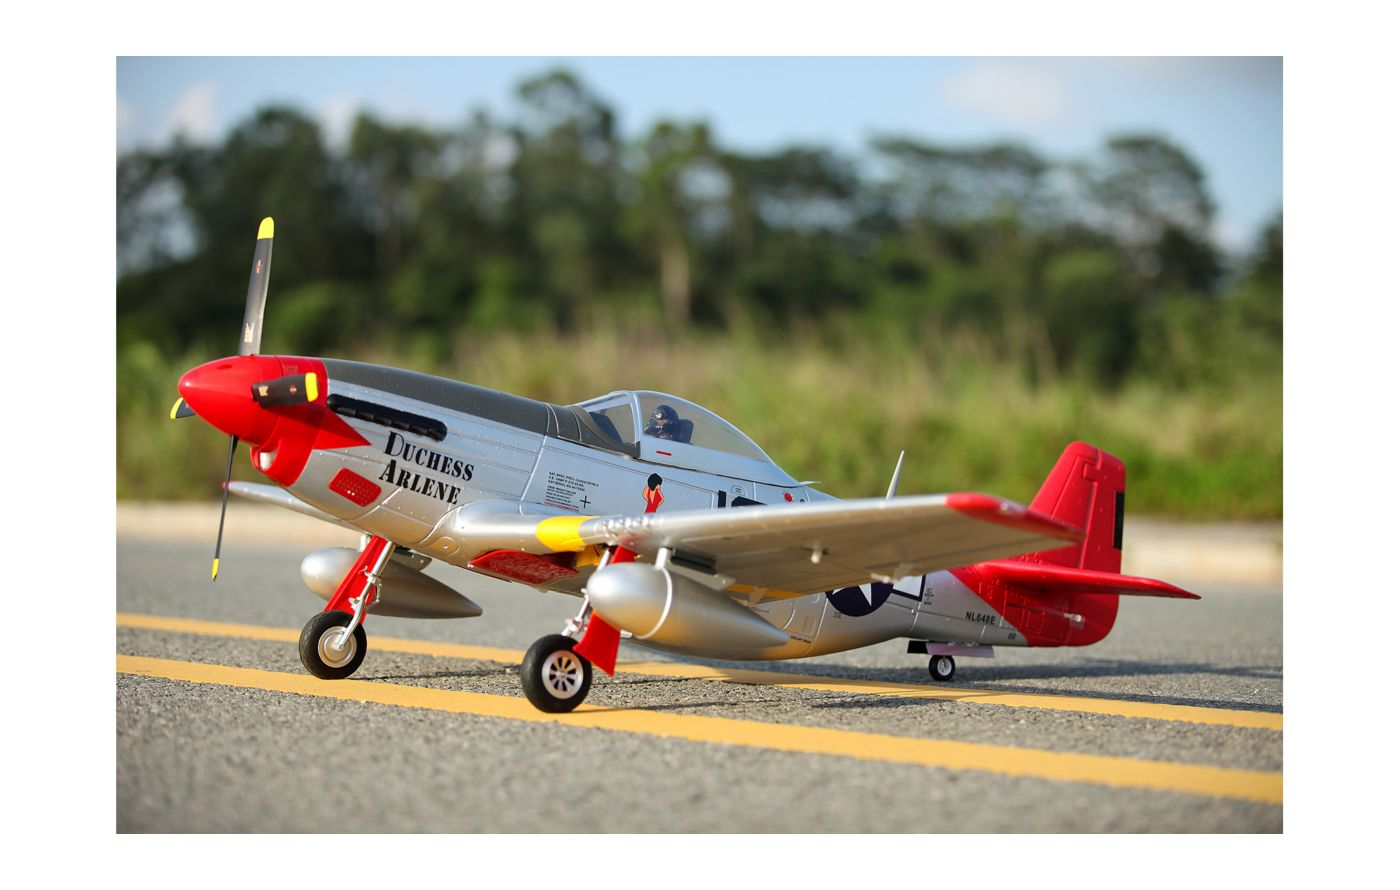 Image for P-51D Red Tail V8 PNP, 1450mm from Force RC